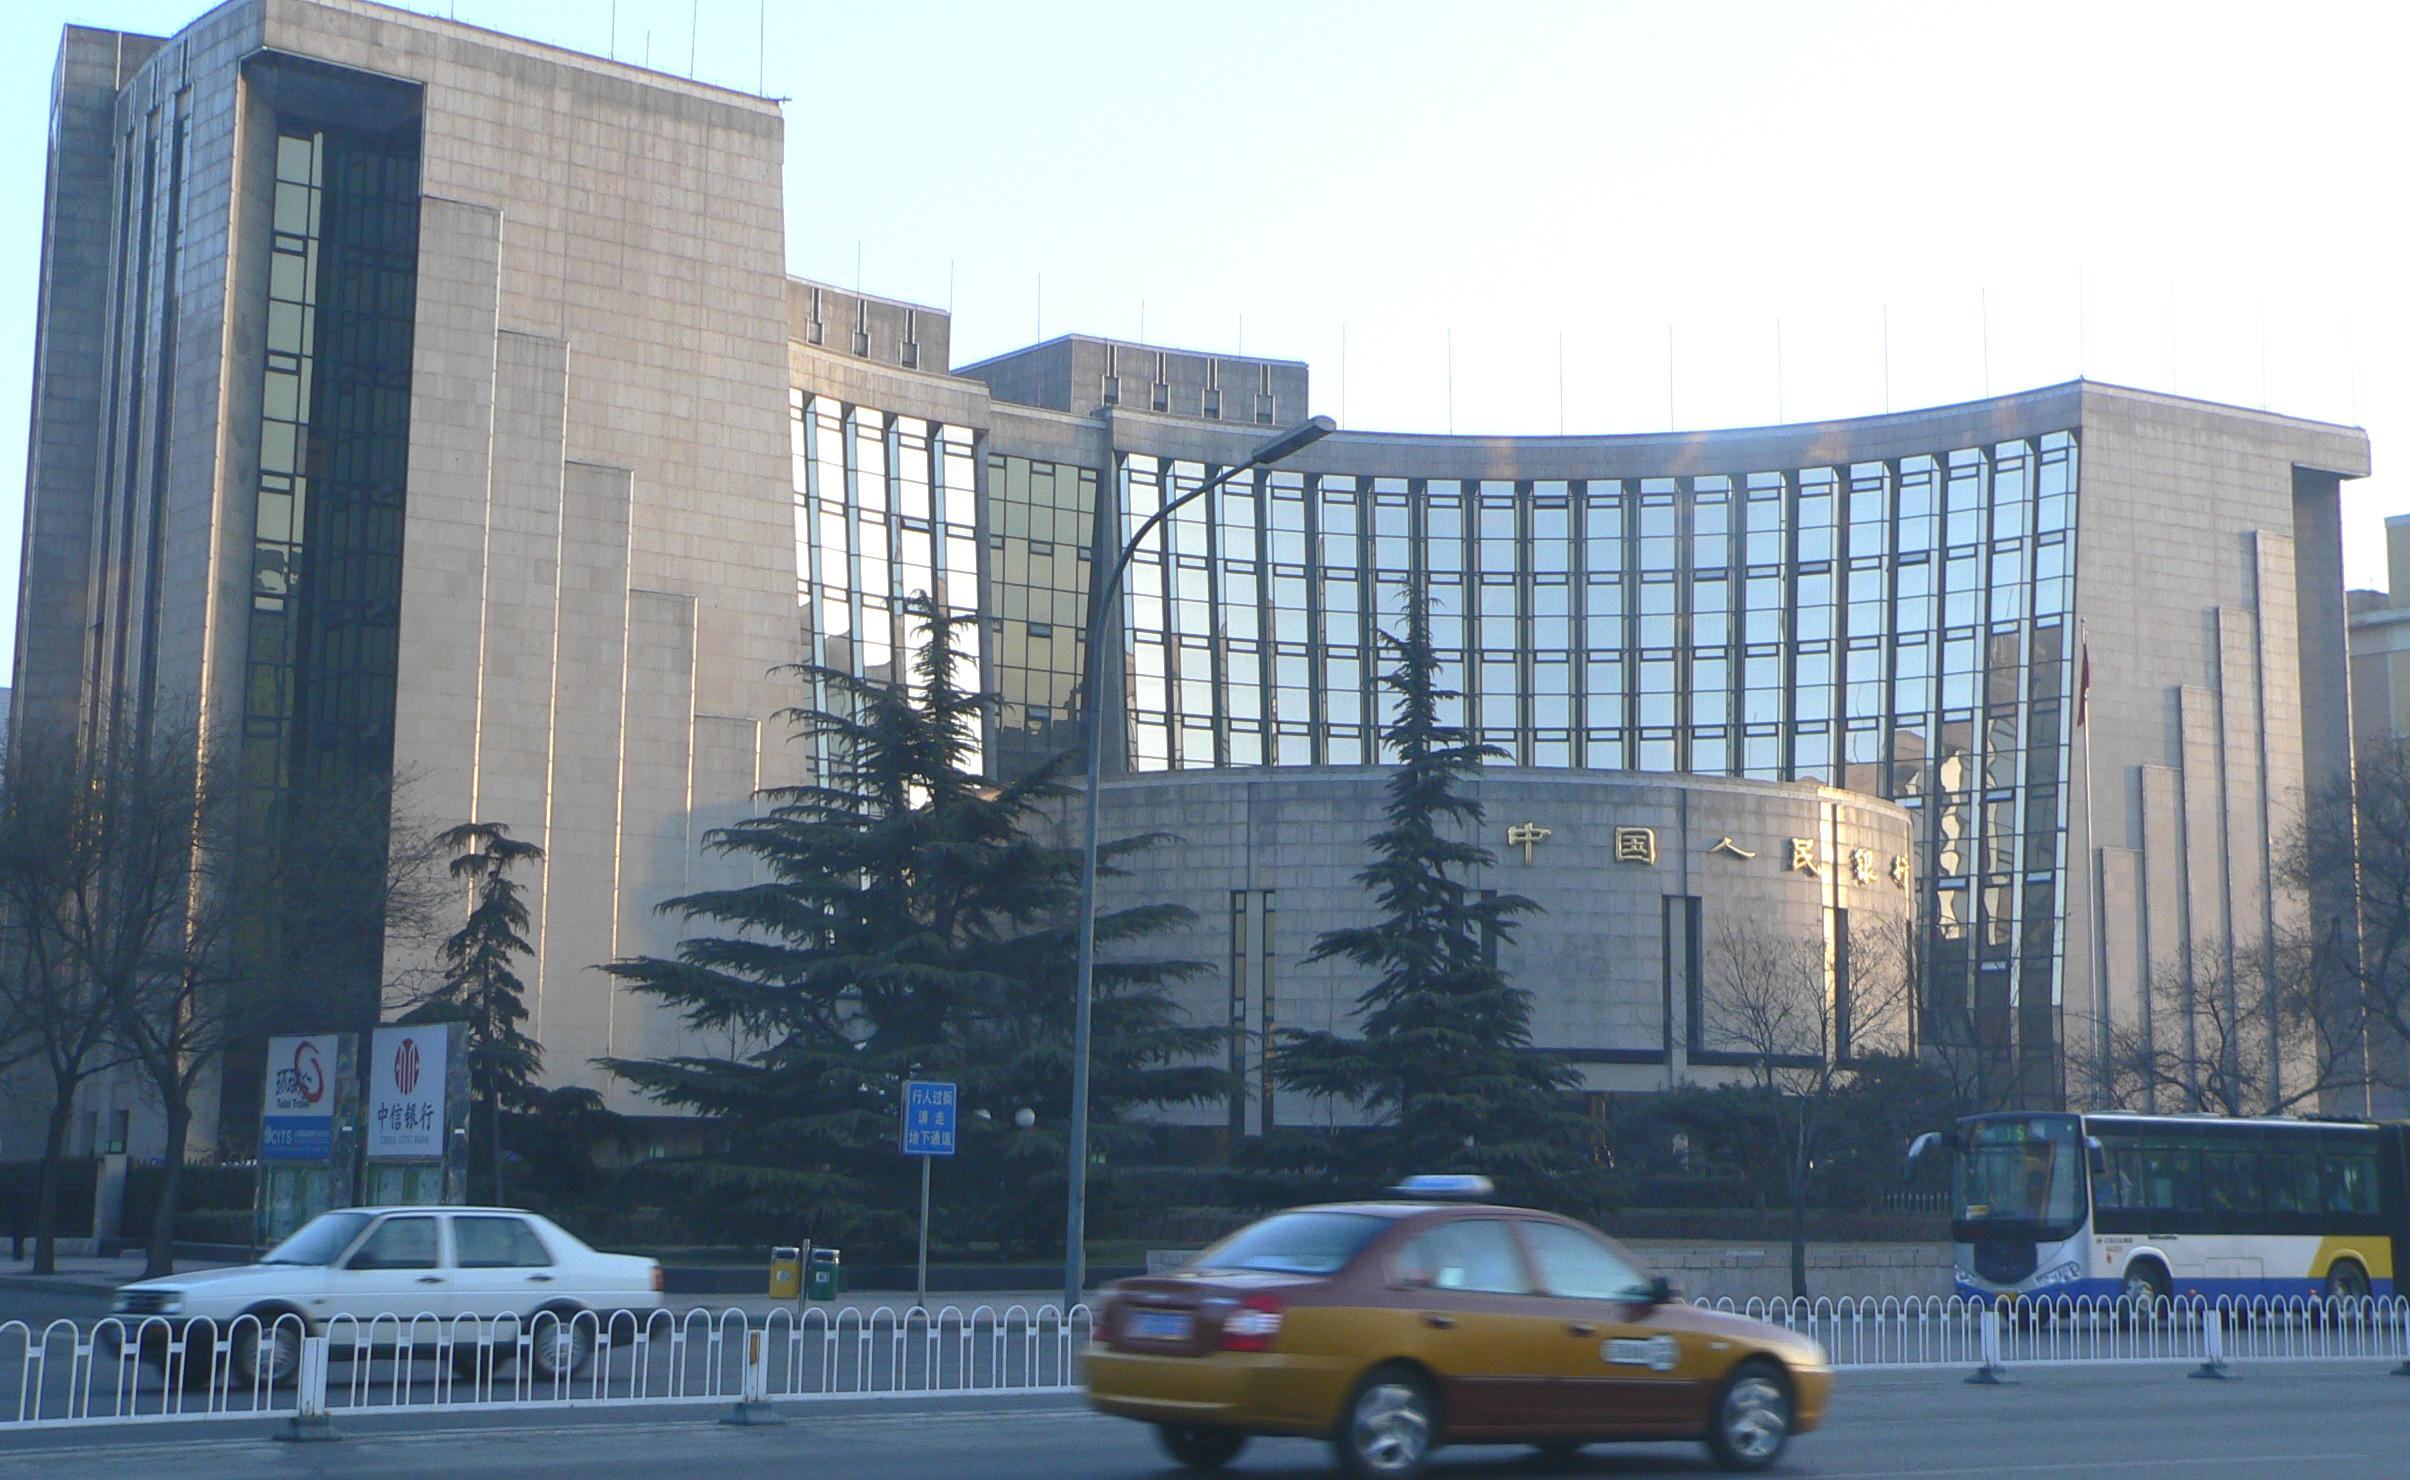 HQ of People's Bank of China